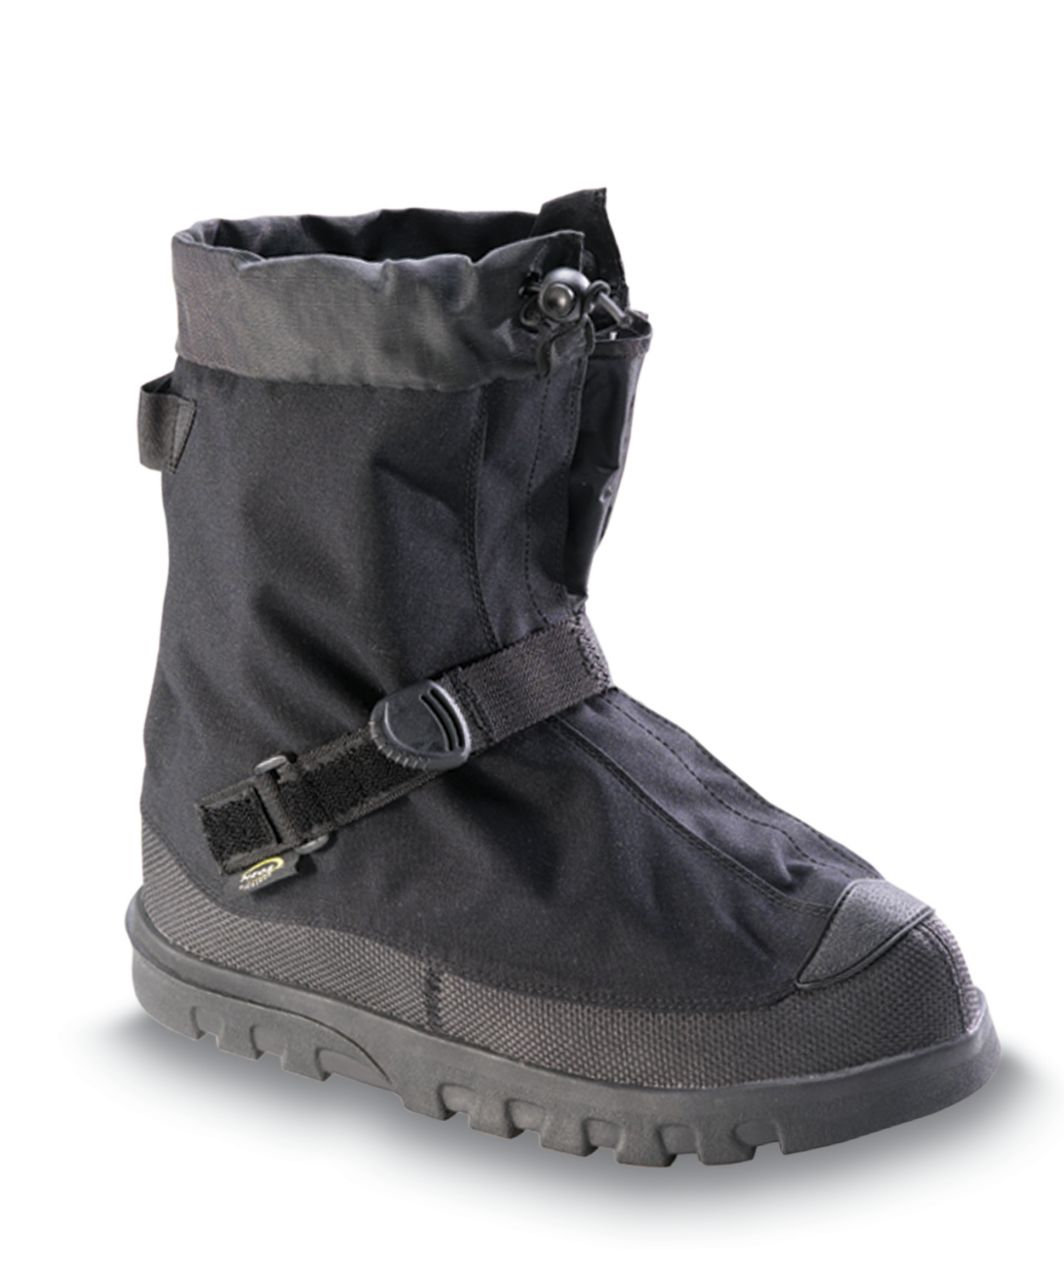 NEOS™ Voyager™ Mid Overshoe_4